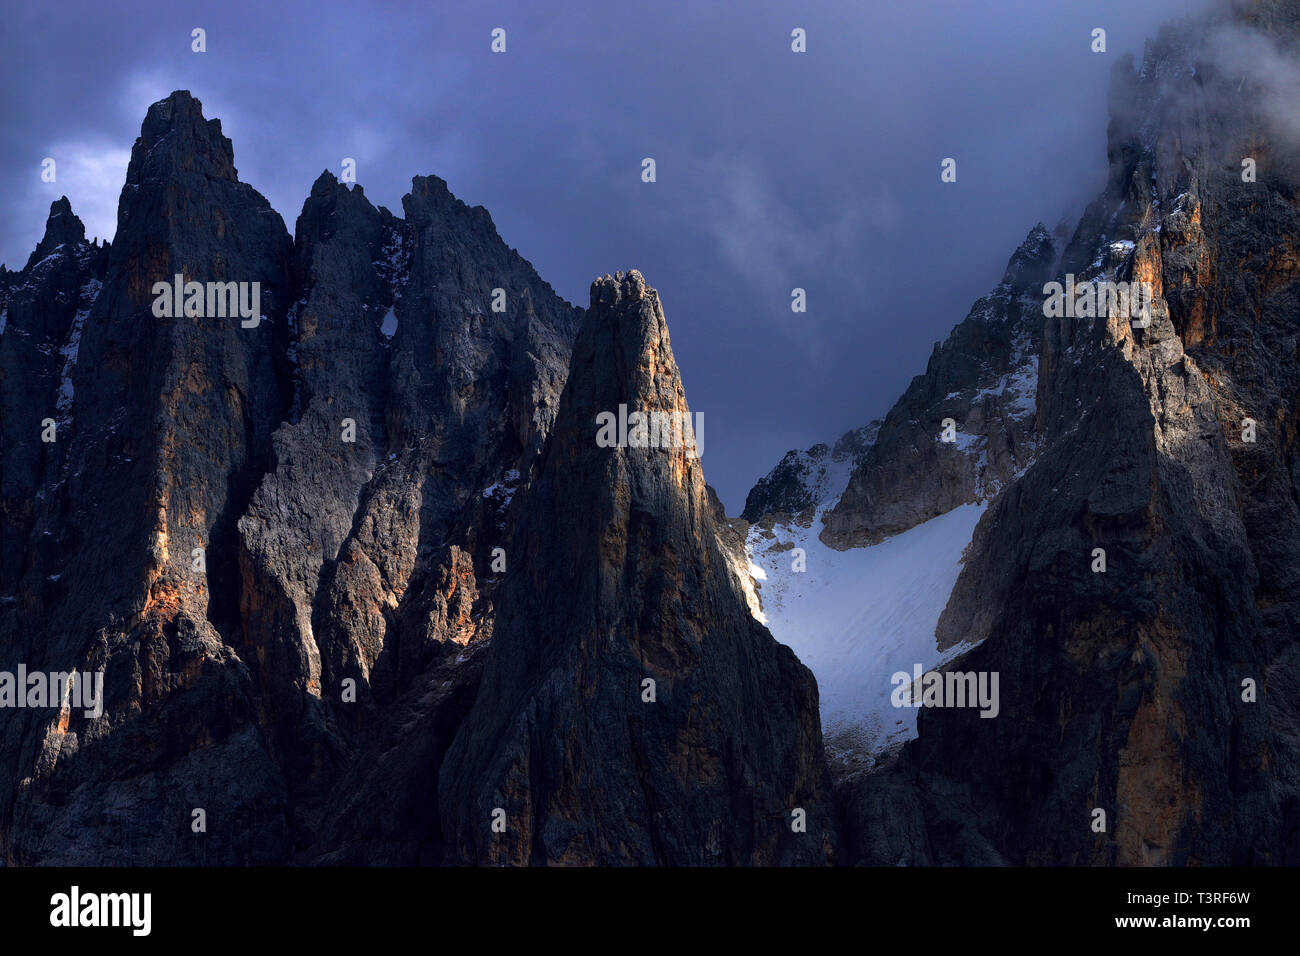 A close-up view on some of the amazing jagged peaks of the Pale di San Martino, one of the most famous and beautiful groups of the Dolomites, as seen  Stock Photo